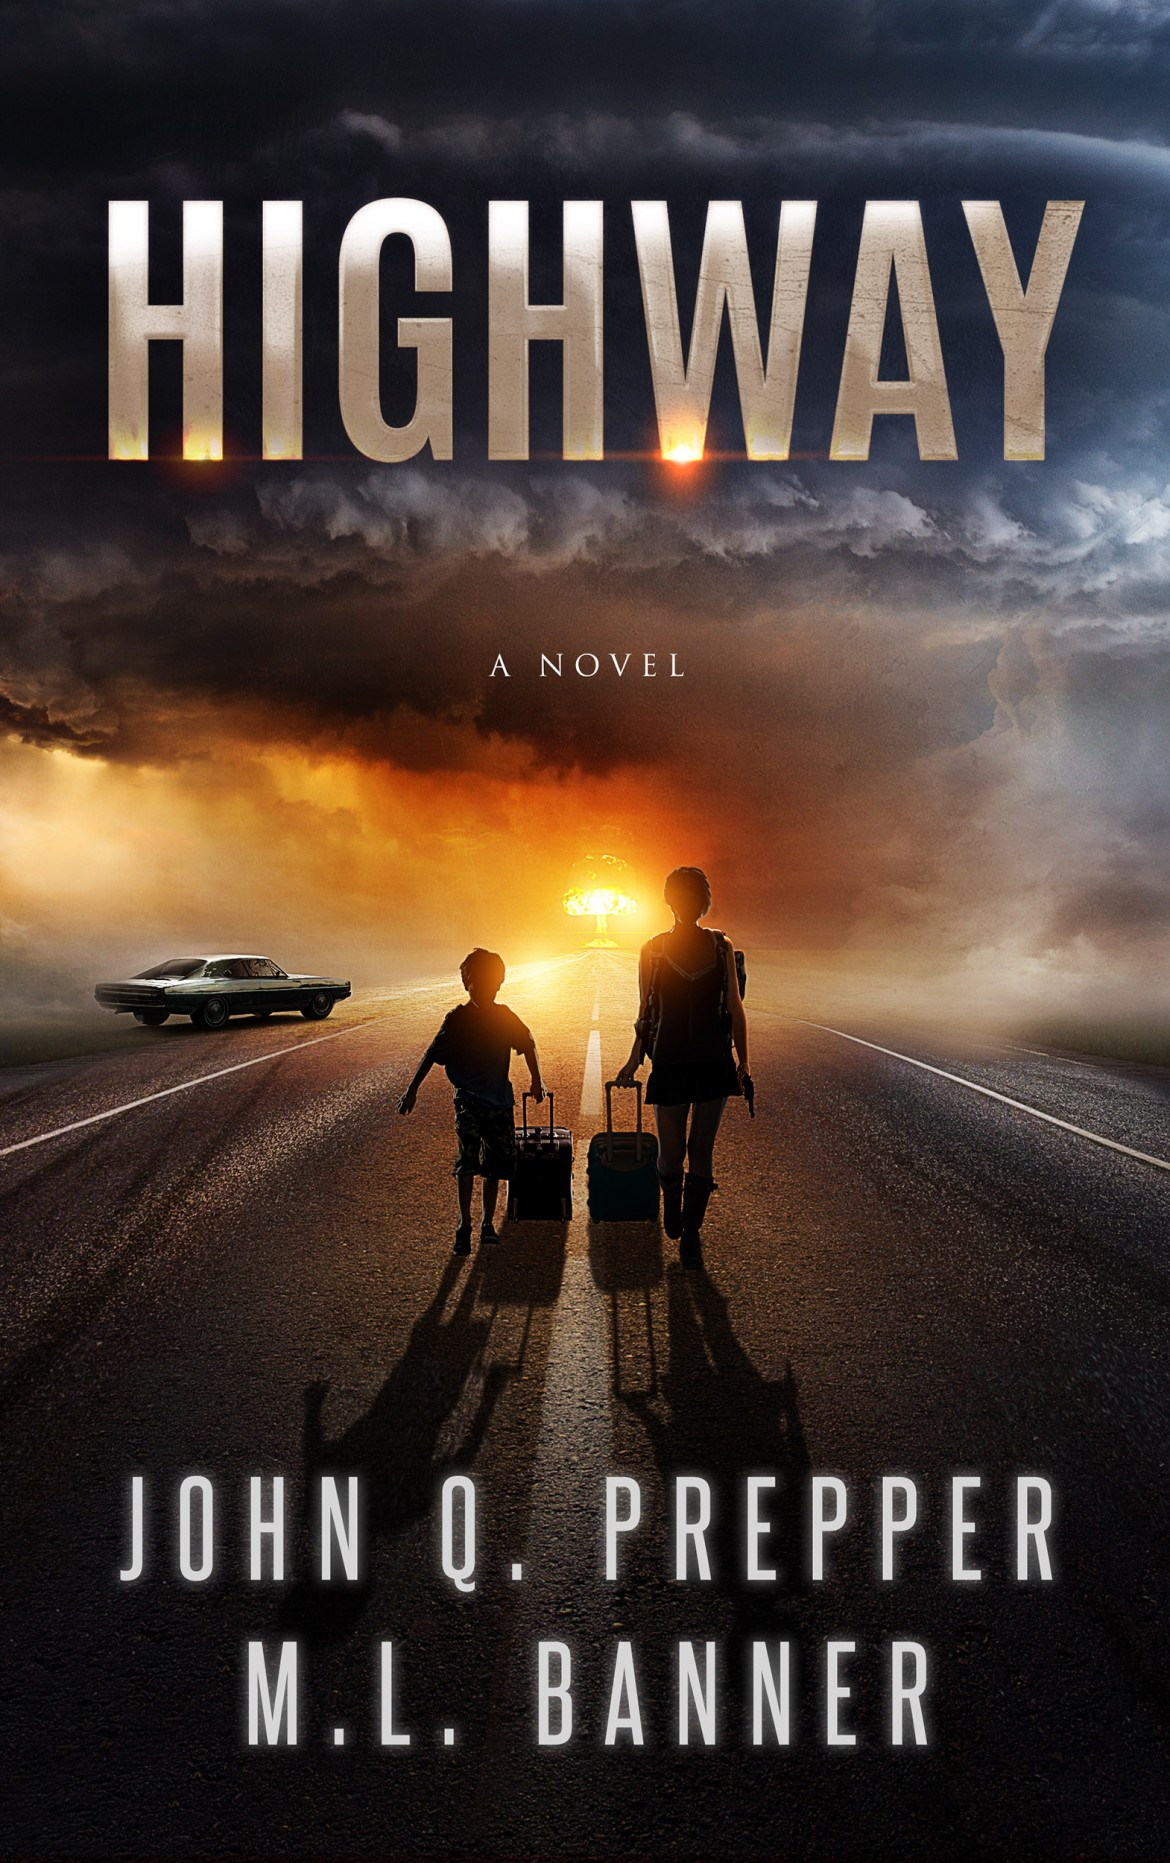 Highway - Ebook Small